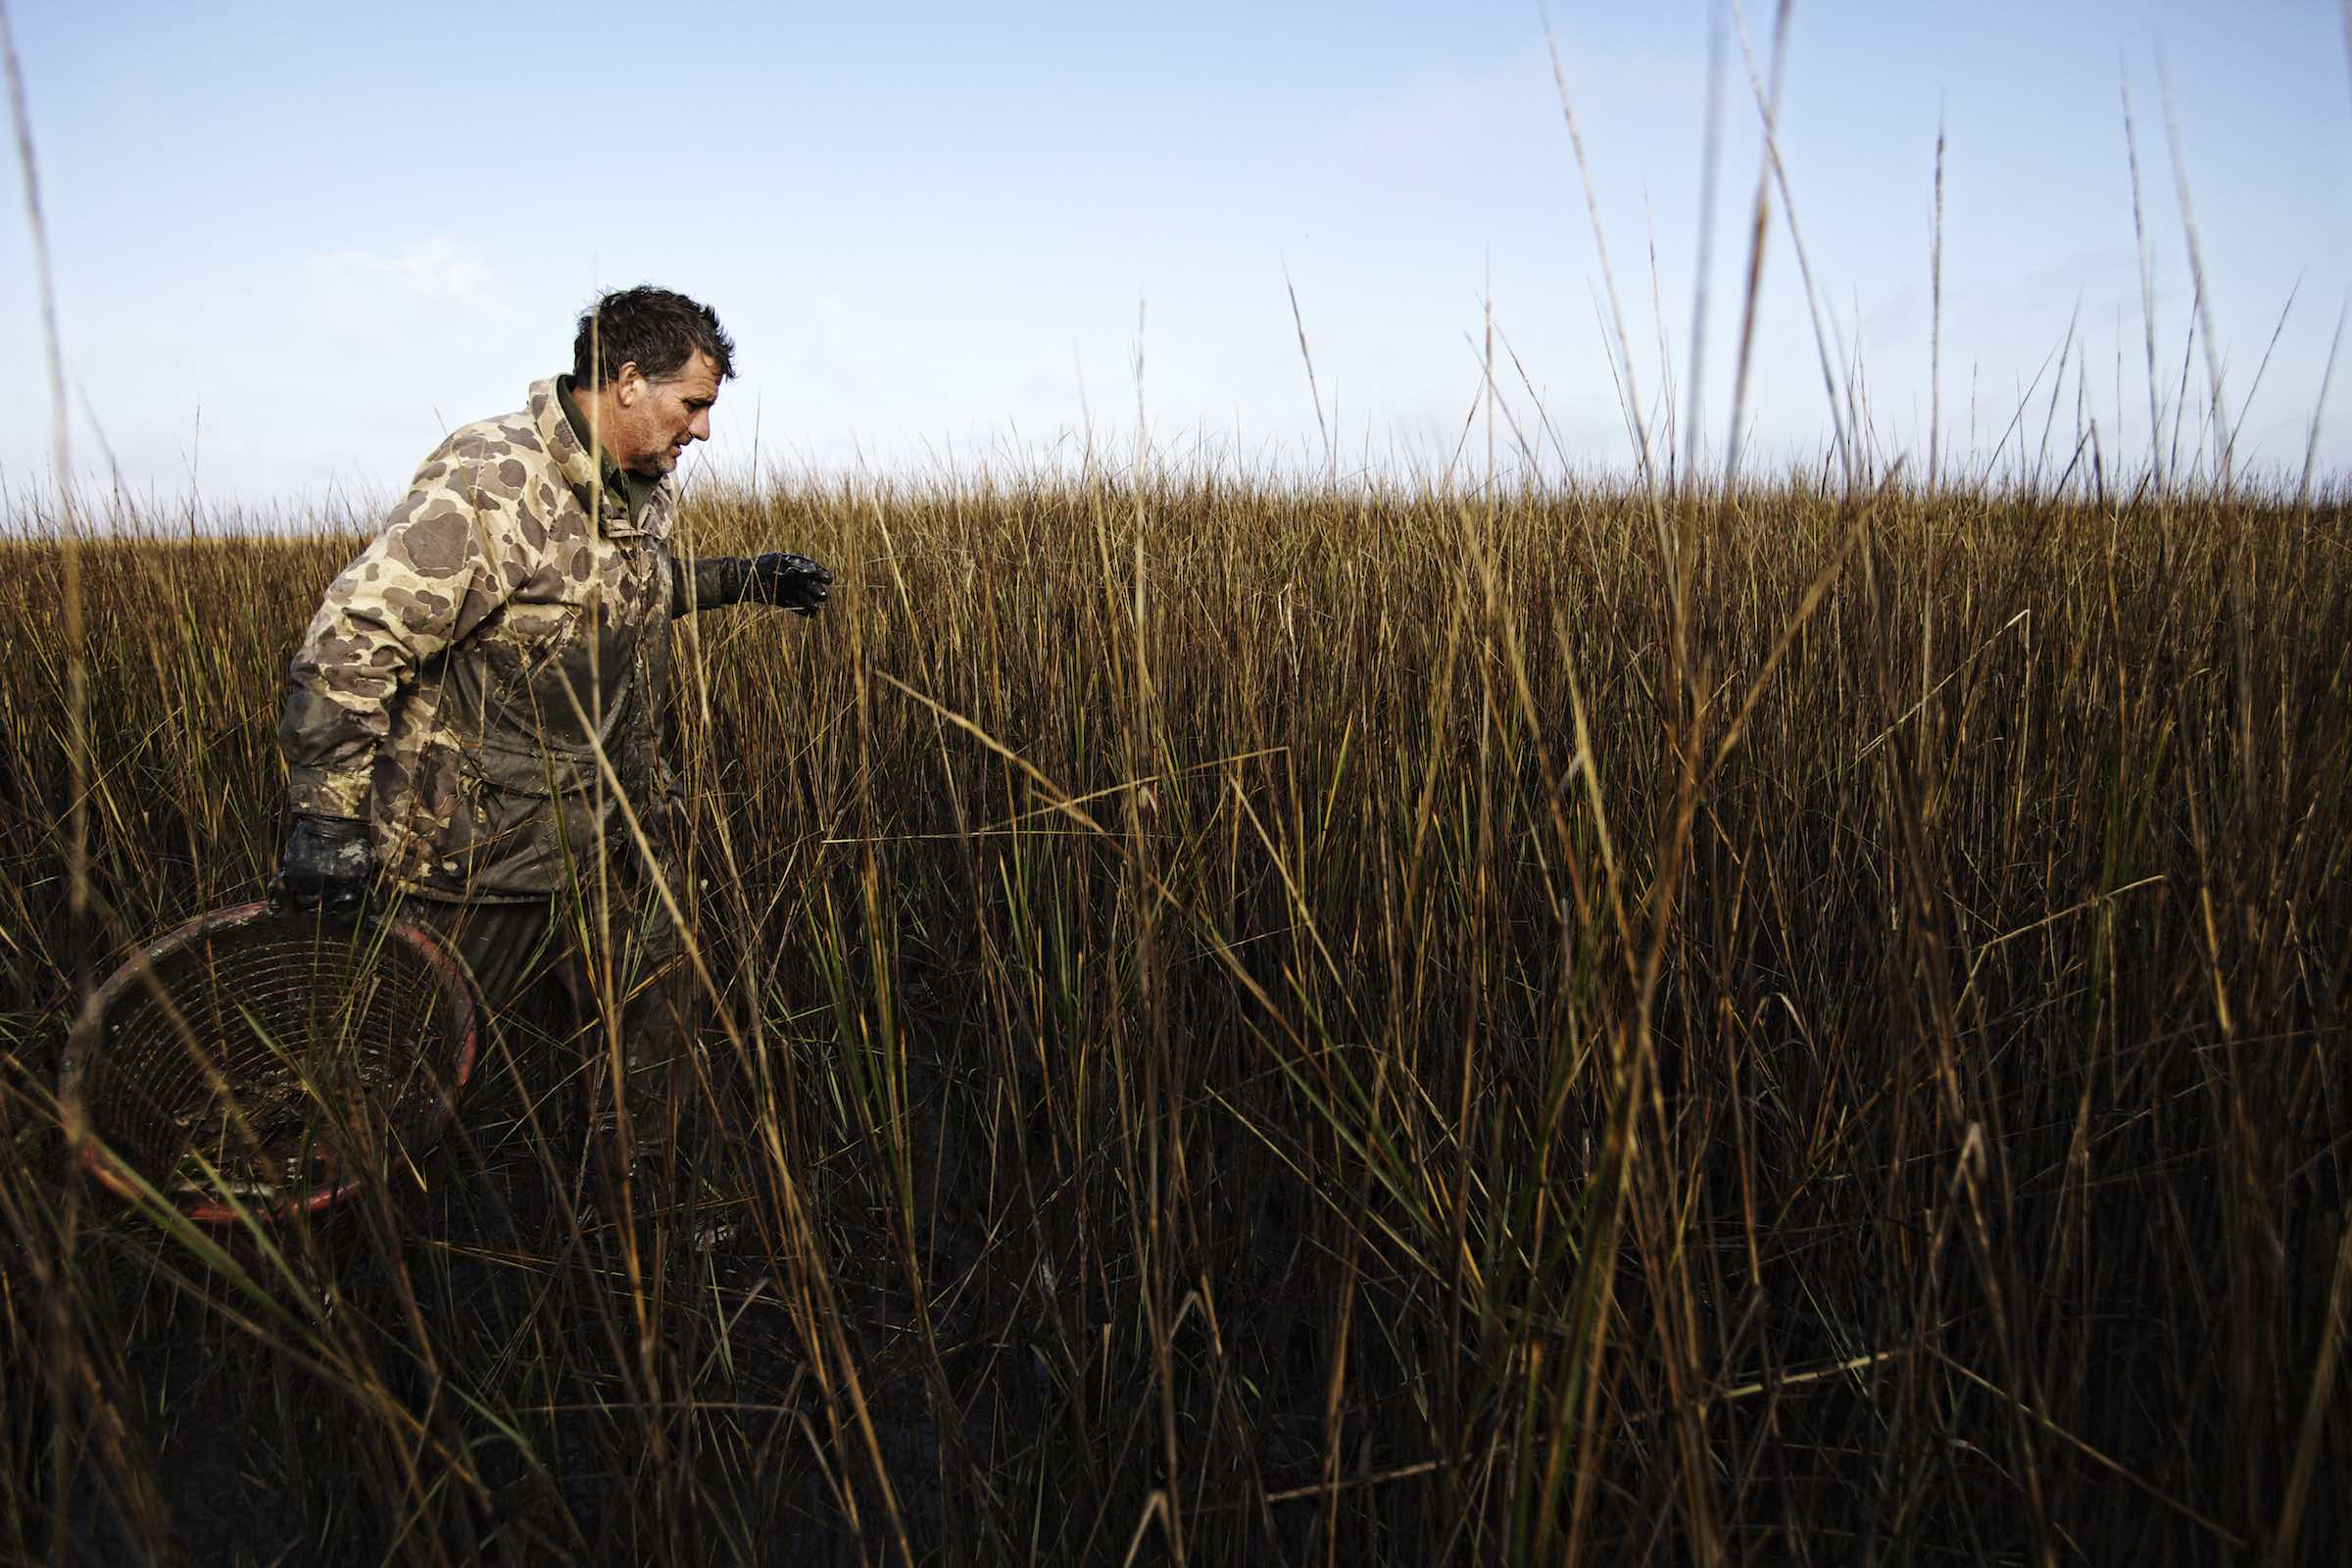 Jody Horton Photography - Fisherman walking through tall grasses during the oyster harvest.